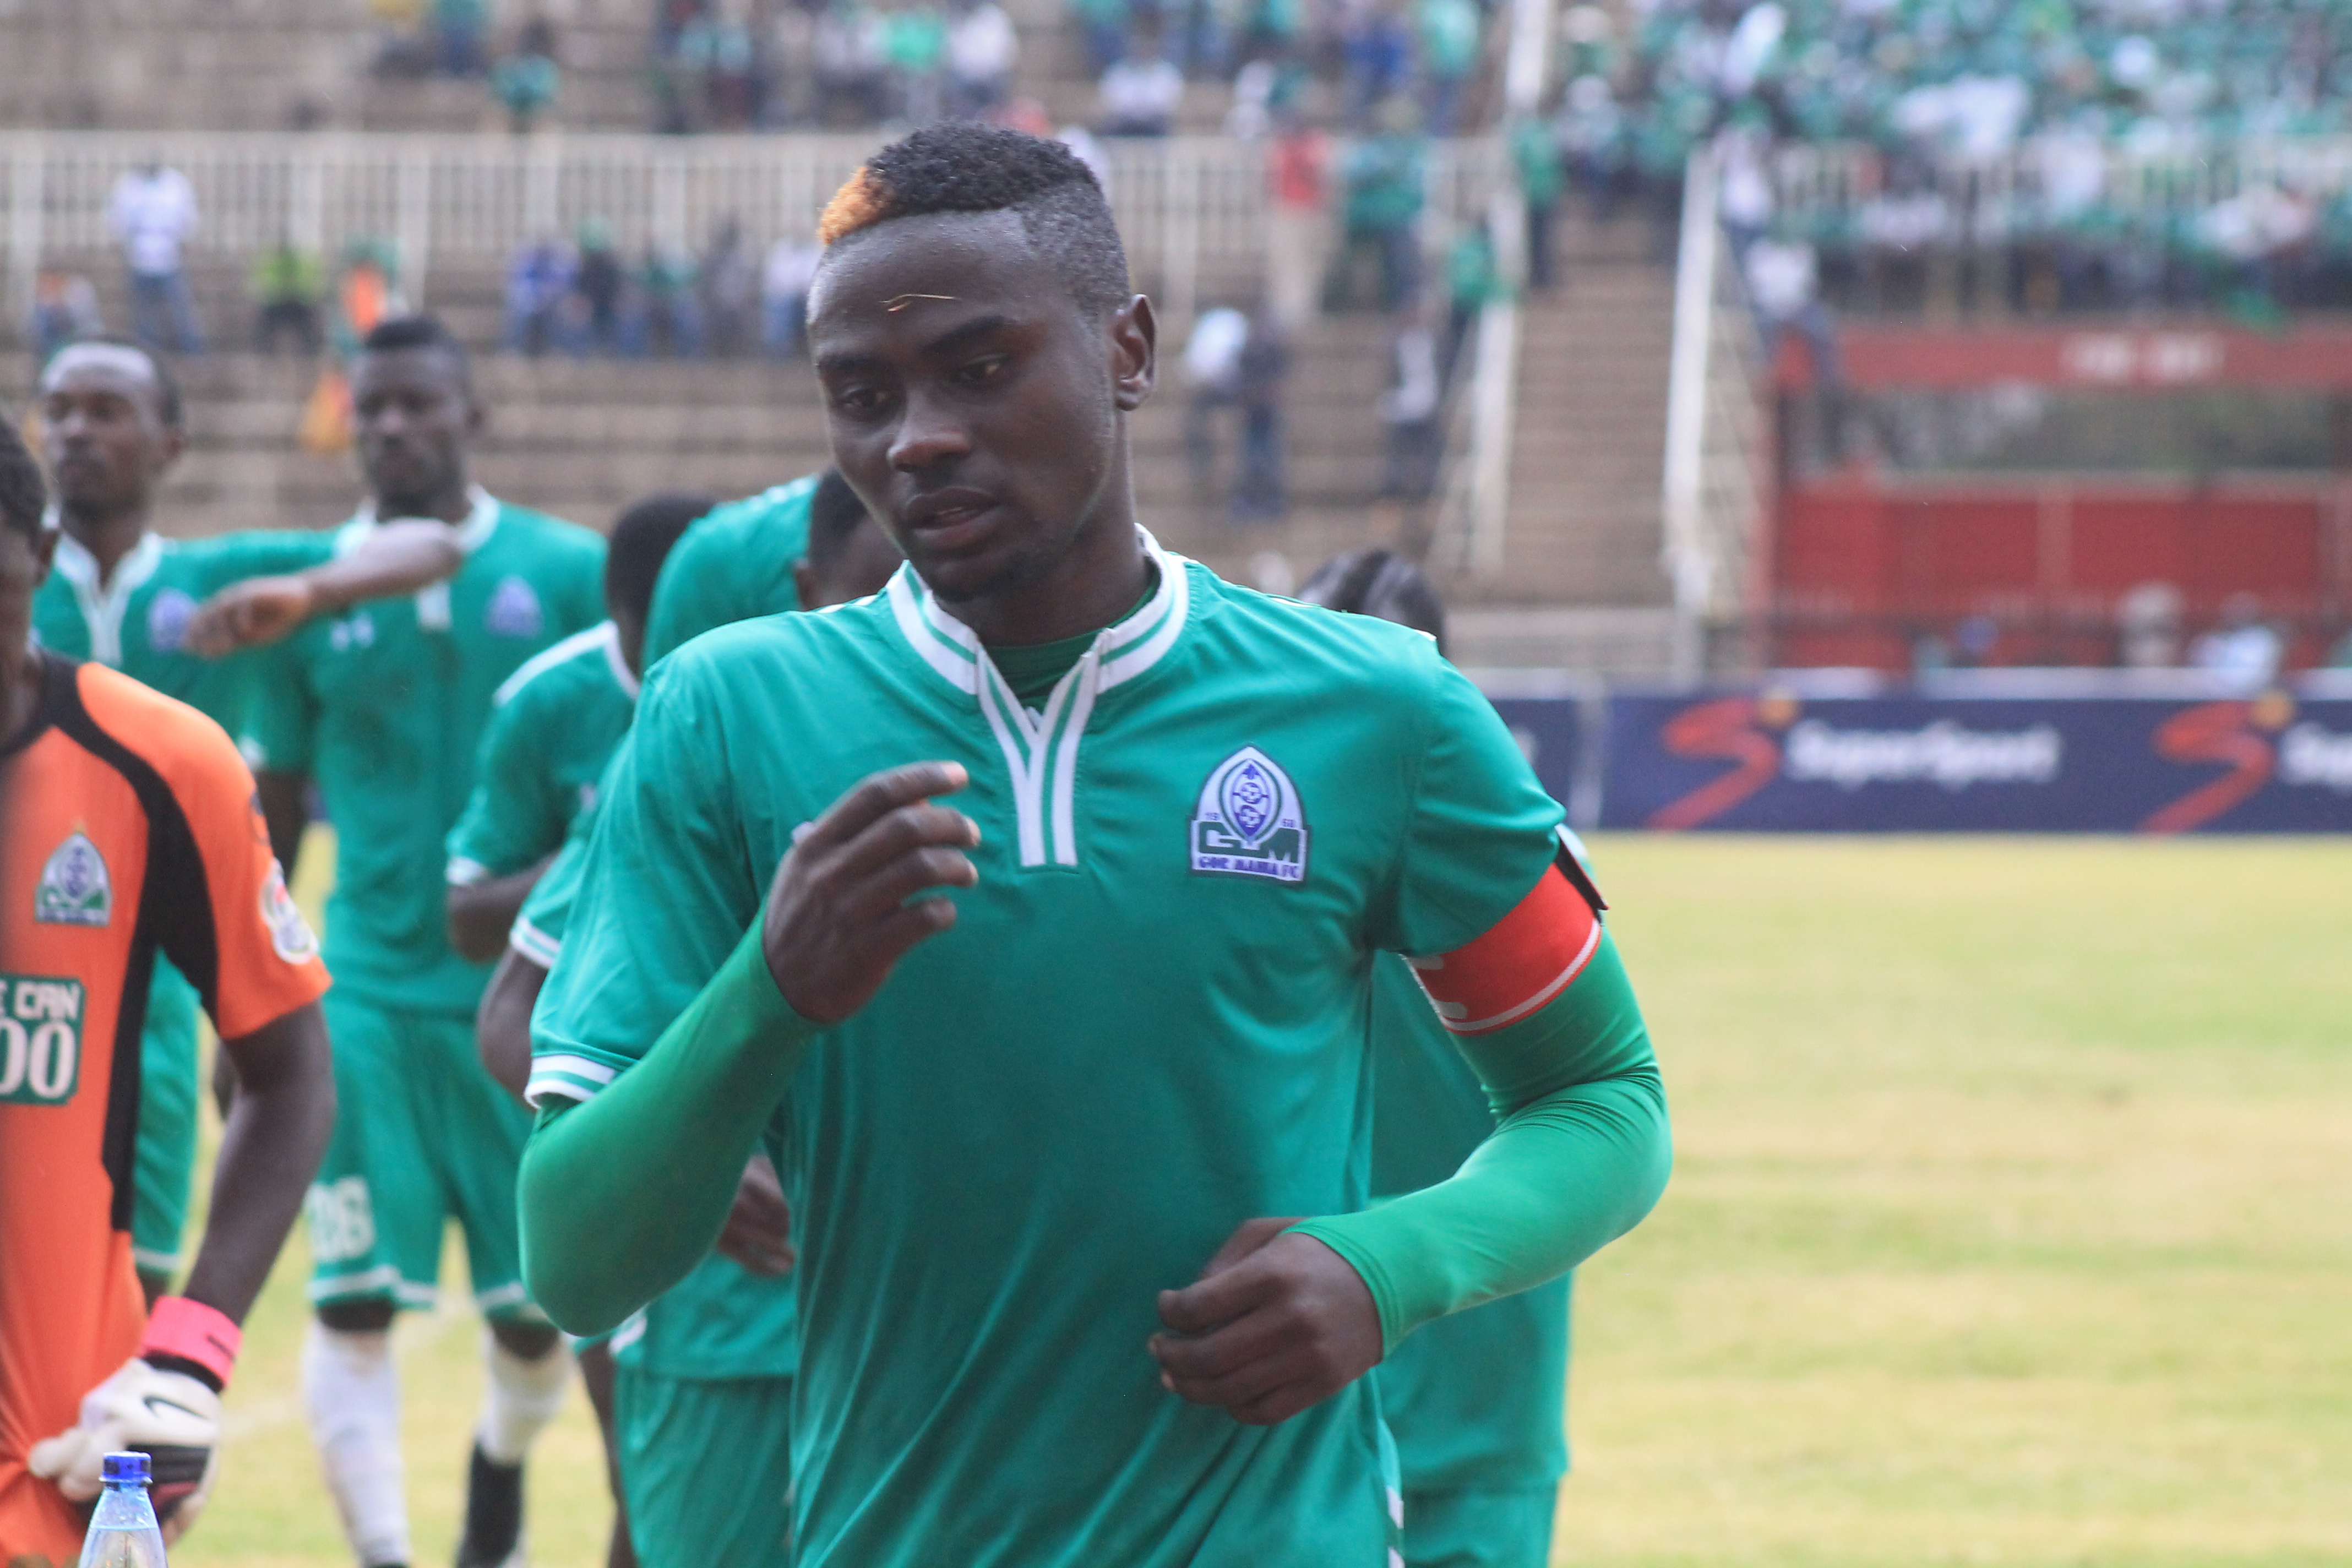 sow - Meet Kenyan Footballers Who Have Jaw-Dropping Hairstyles (PHOTOS)